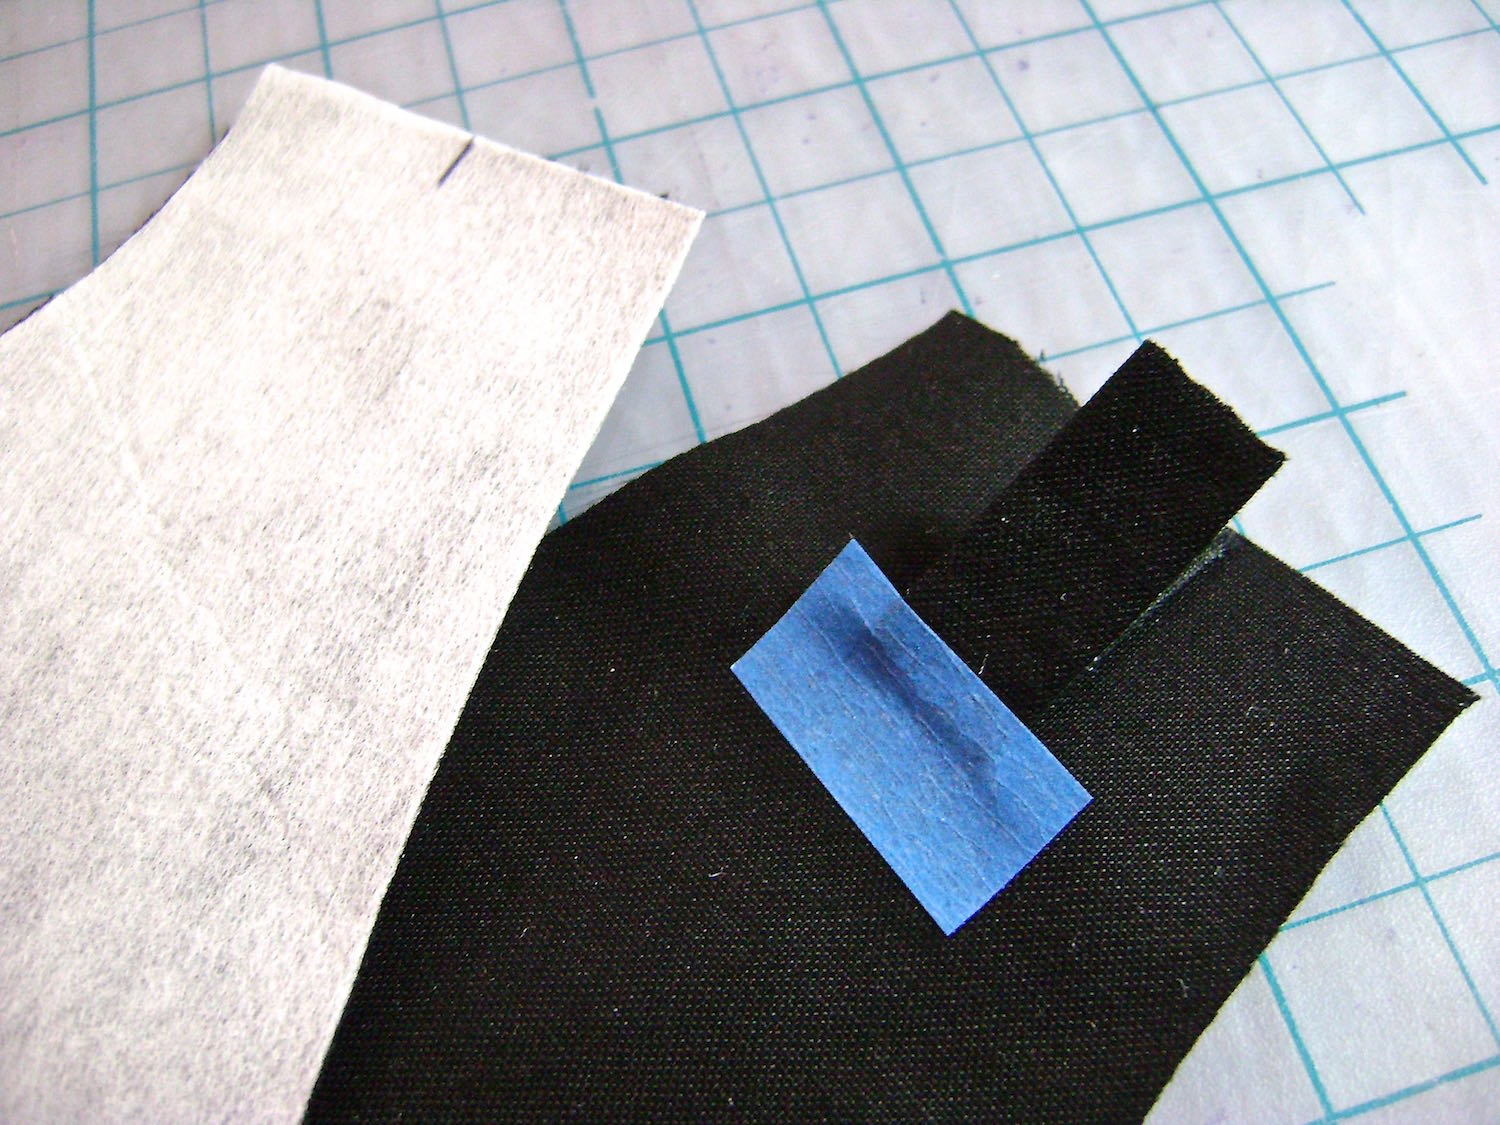 "step 5 - Fold each of the four pieces in half and align them with the center of the purse yoke extensions. Pin or tape in place. Stitch through all thicknesses 1/2"" from raw edges."